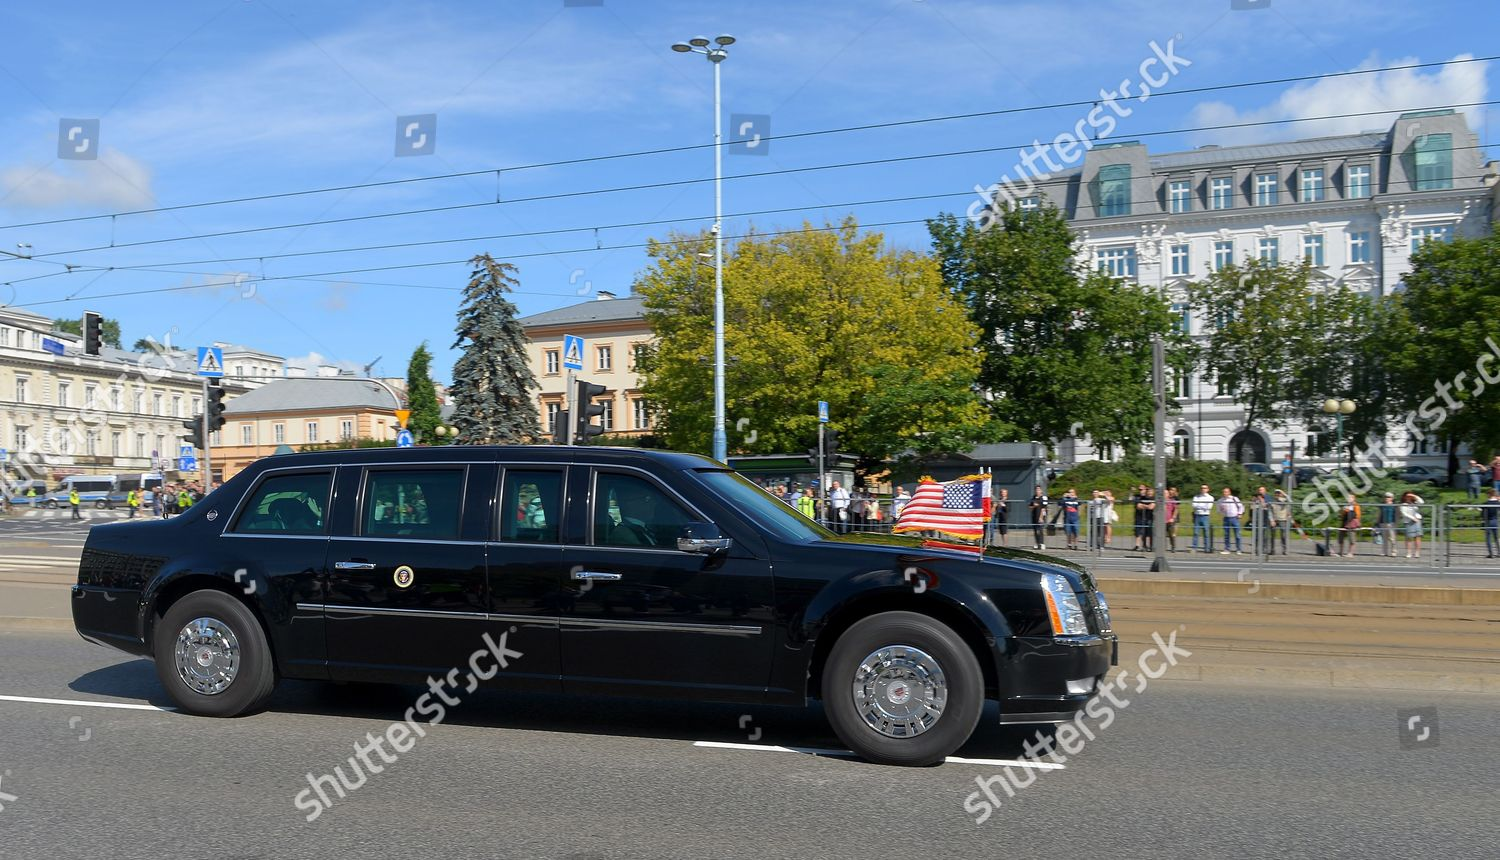 Beast Us Presidential Cadillac One Limousine Carrying Editorial